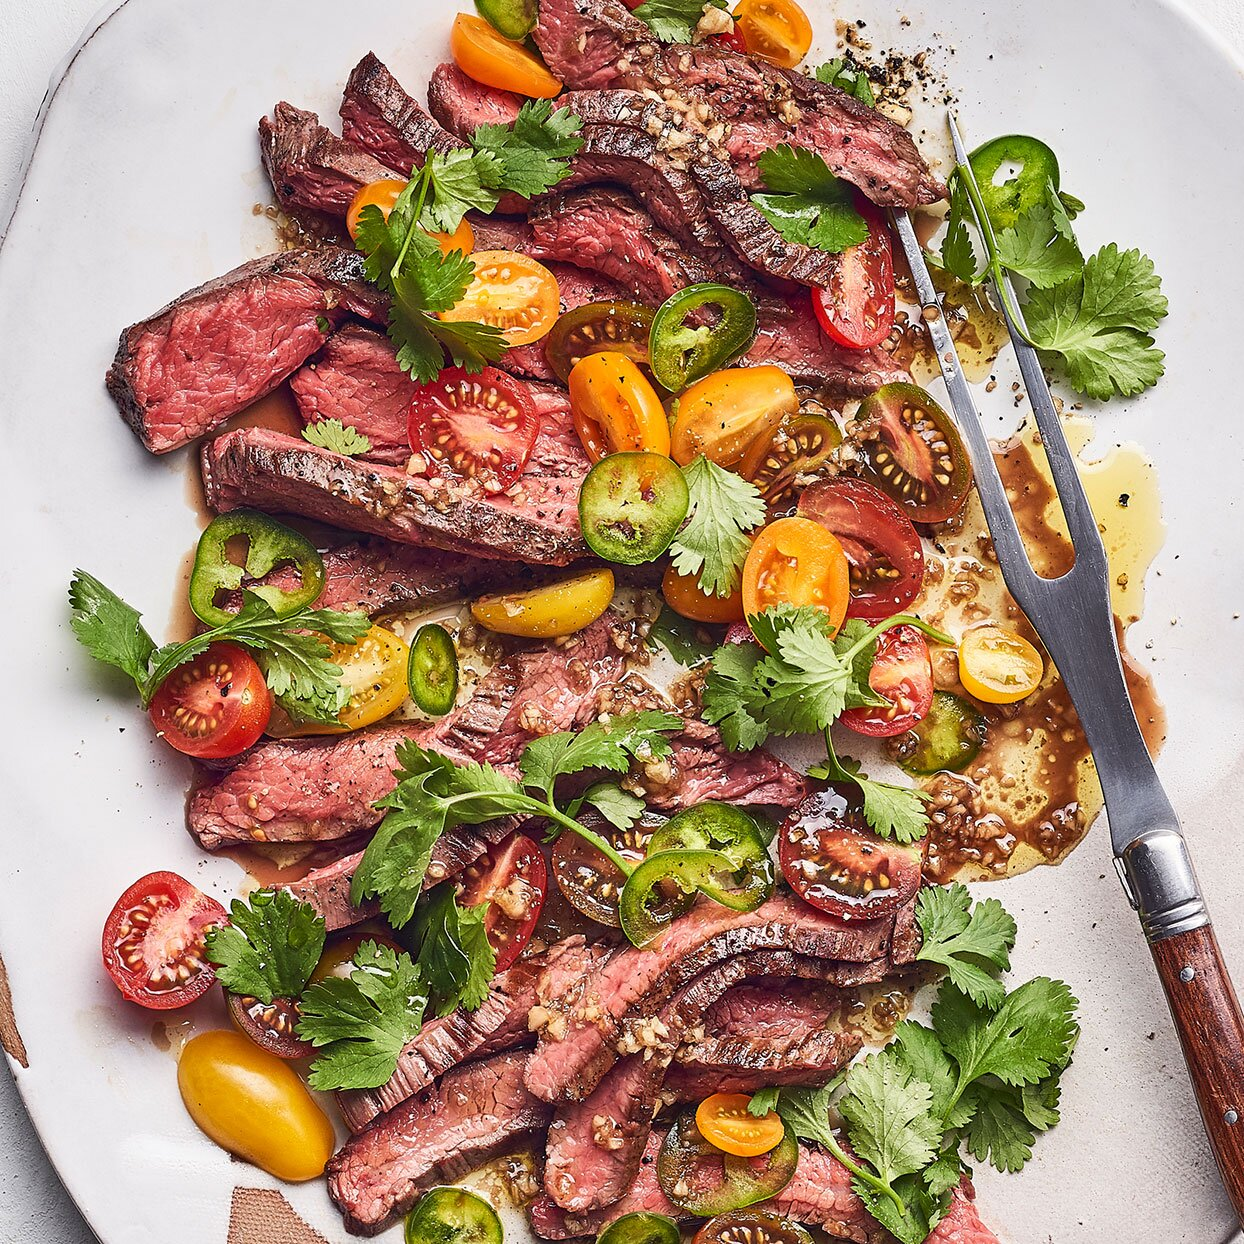 Grilled Flank Steak with Tomato Salad